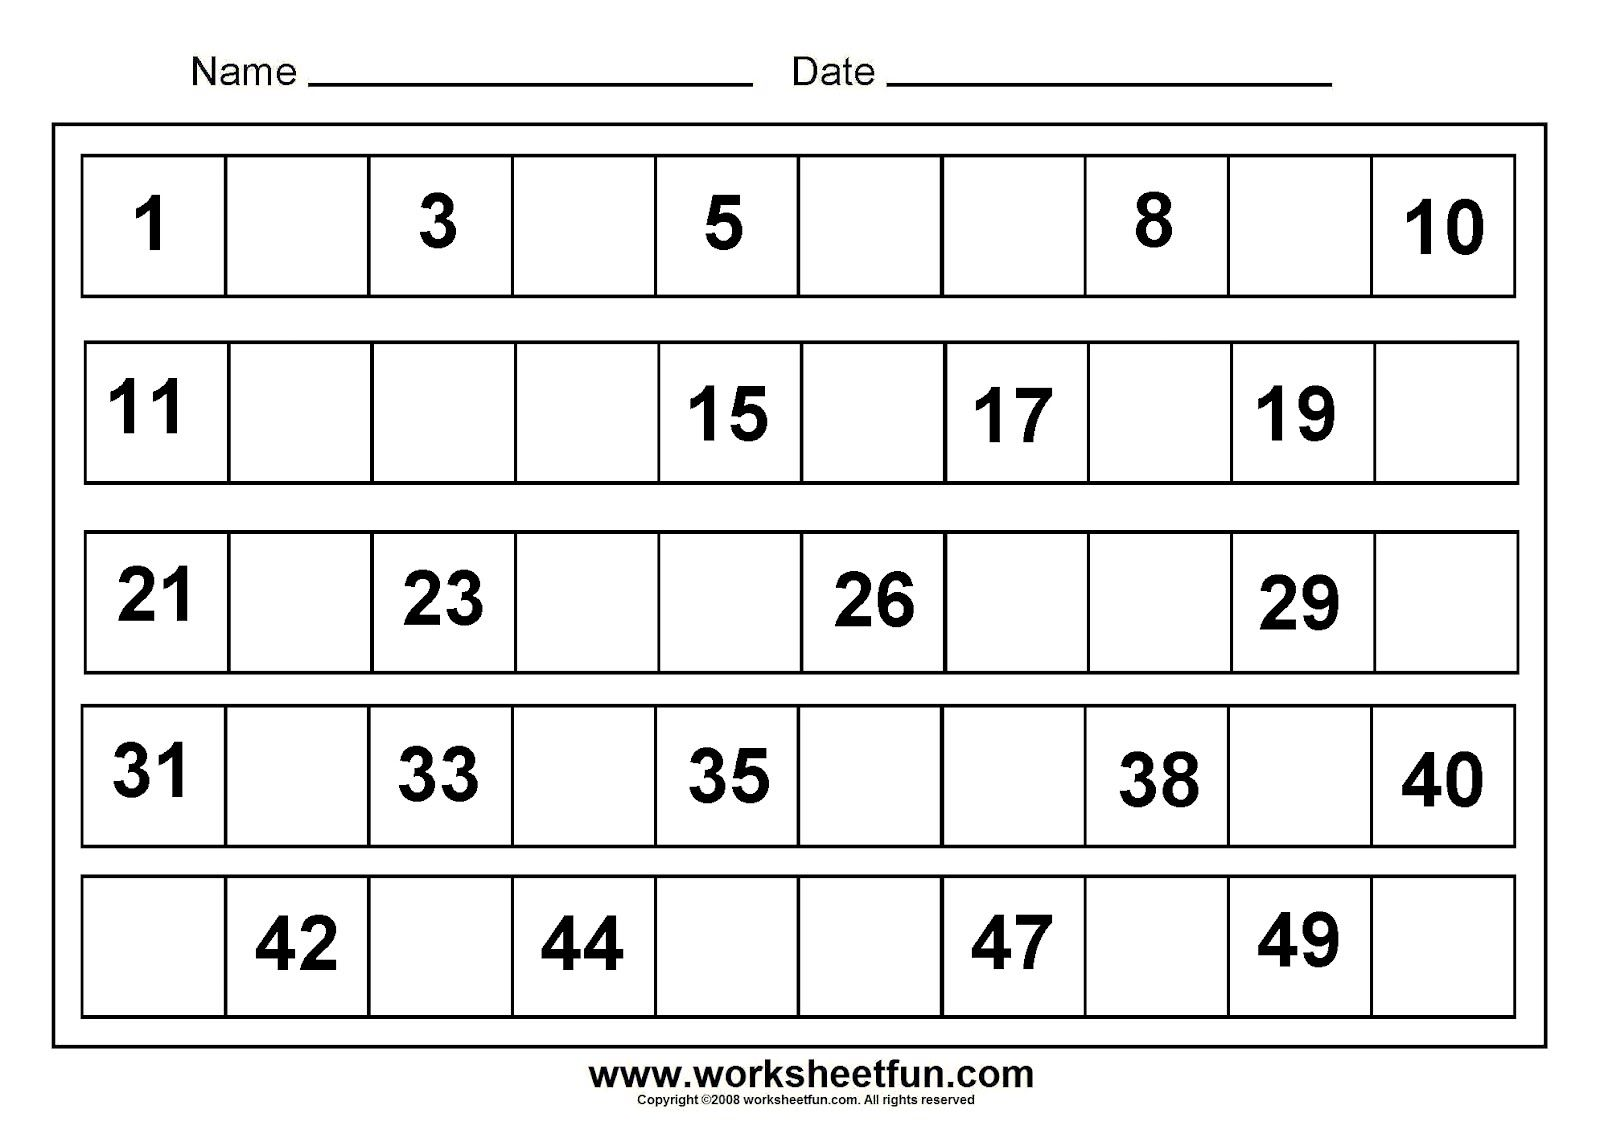 math worksheet : 1000 images about work sheets on pinterest  math worksheets  : Numbers For Kindergarten Worksheets